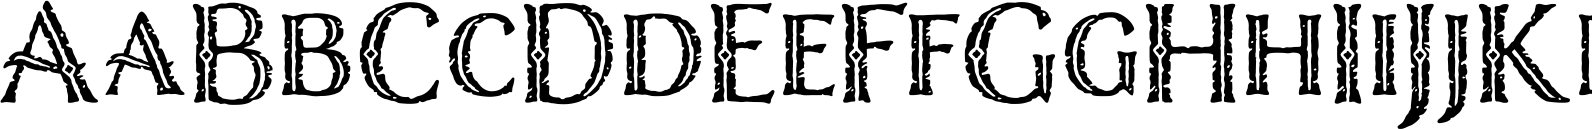 Nelson Engraved Font